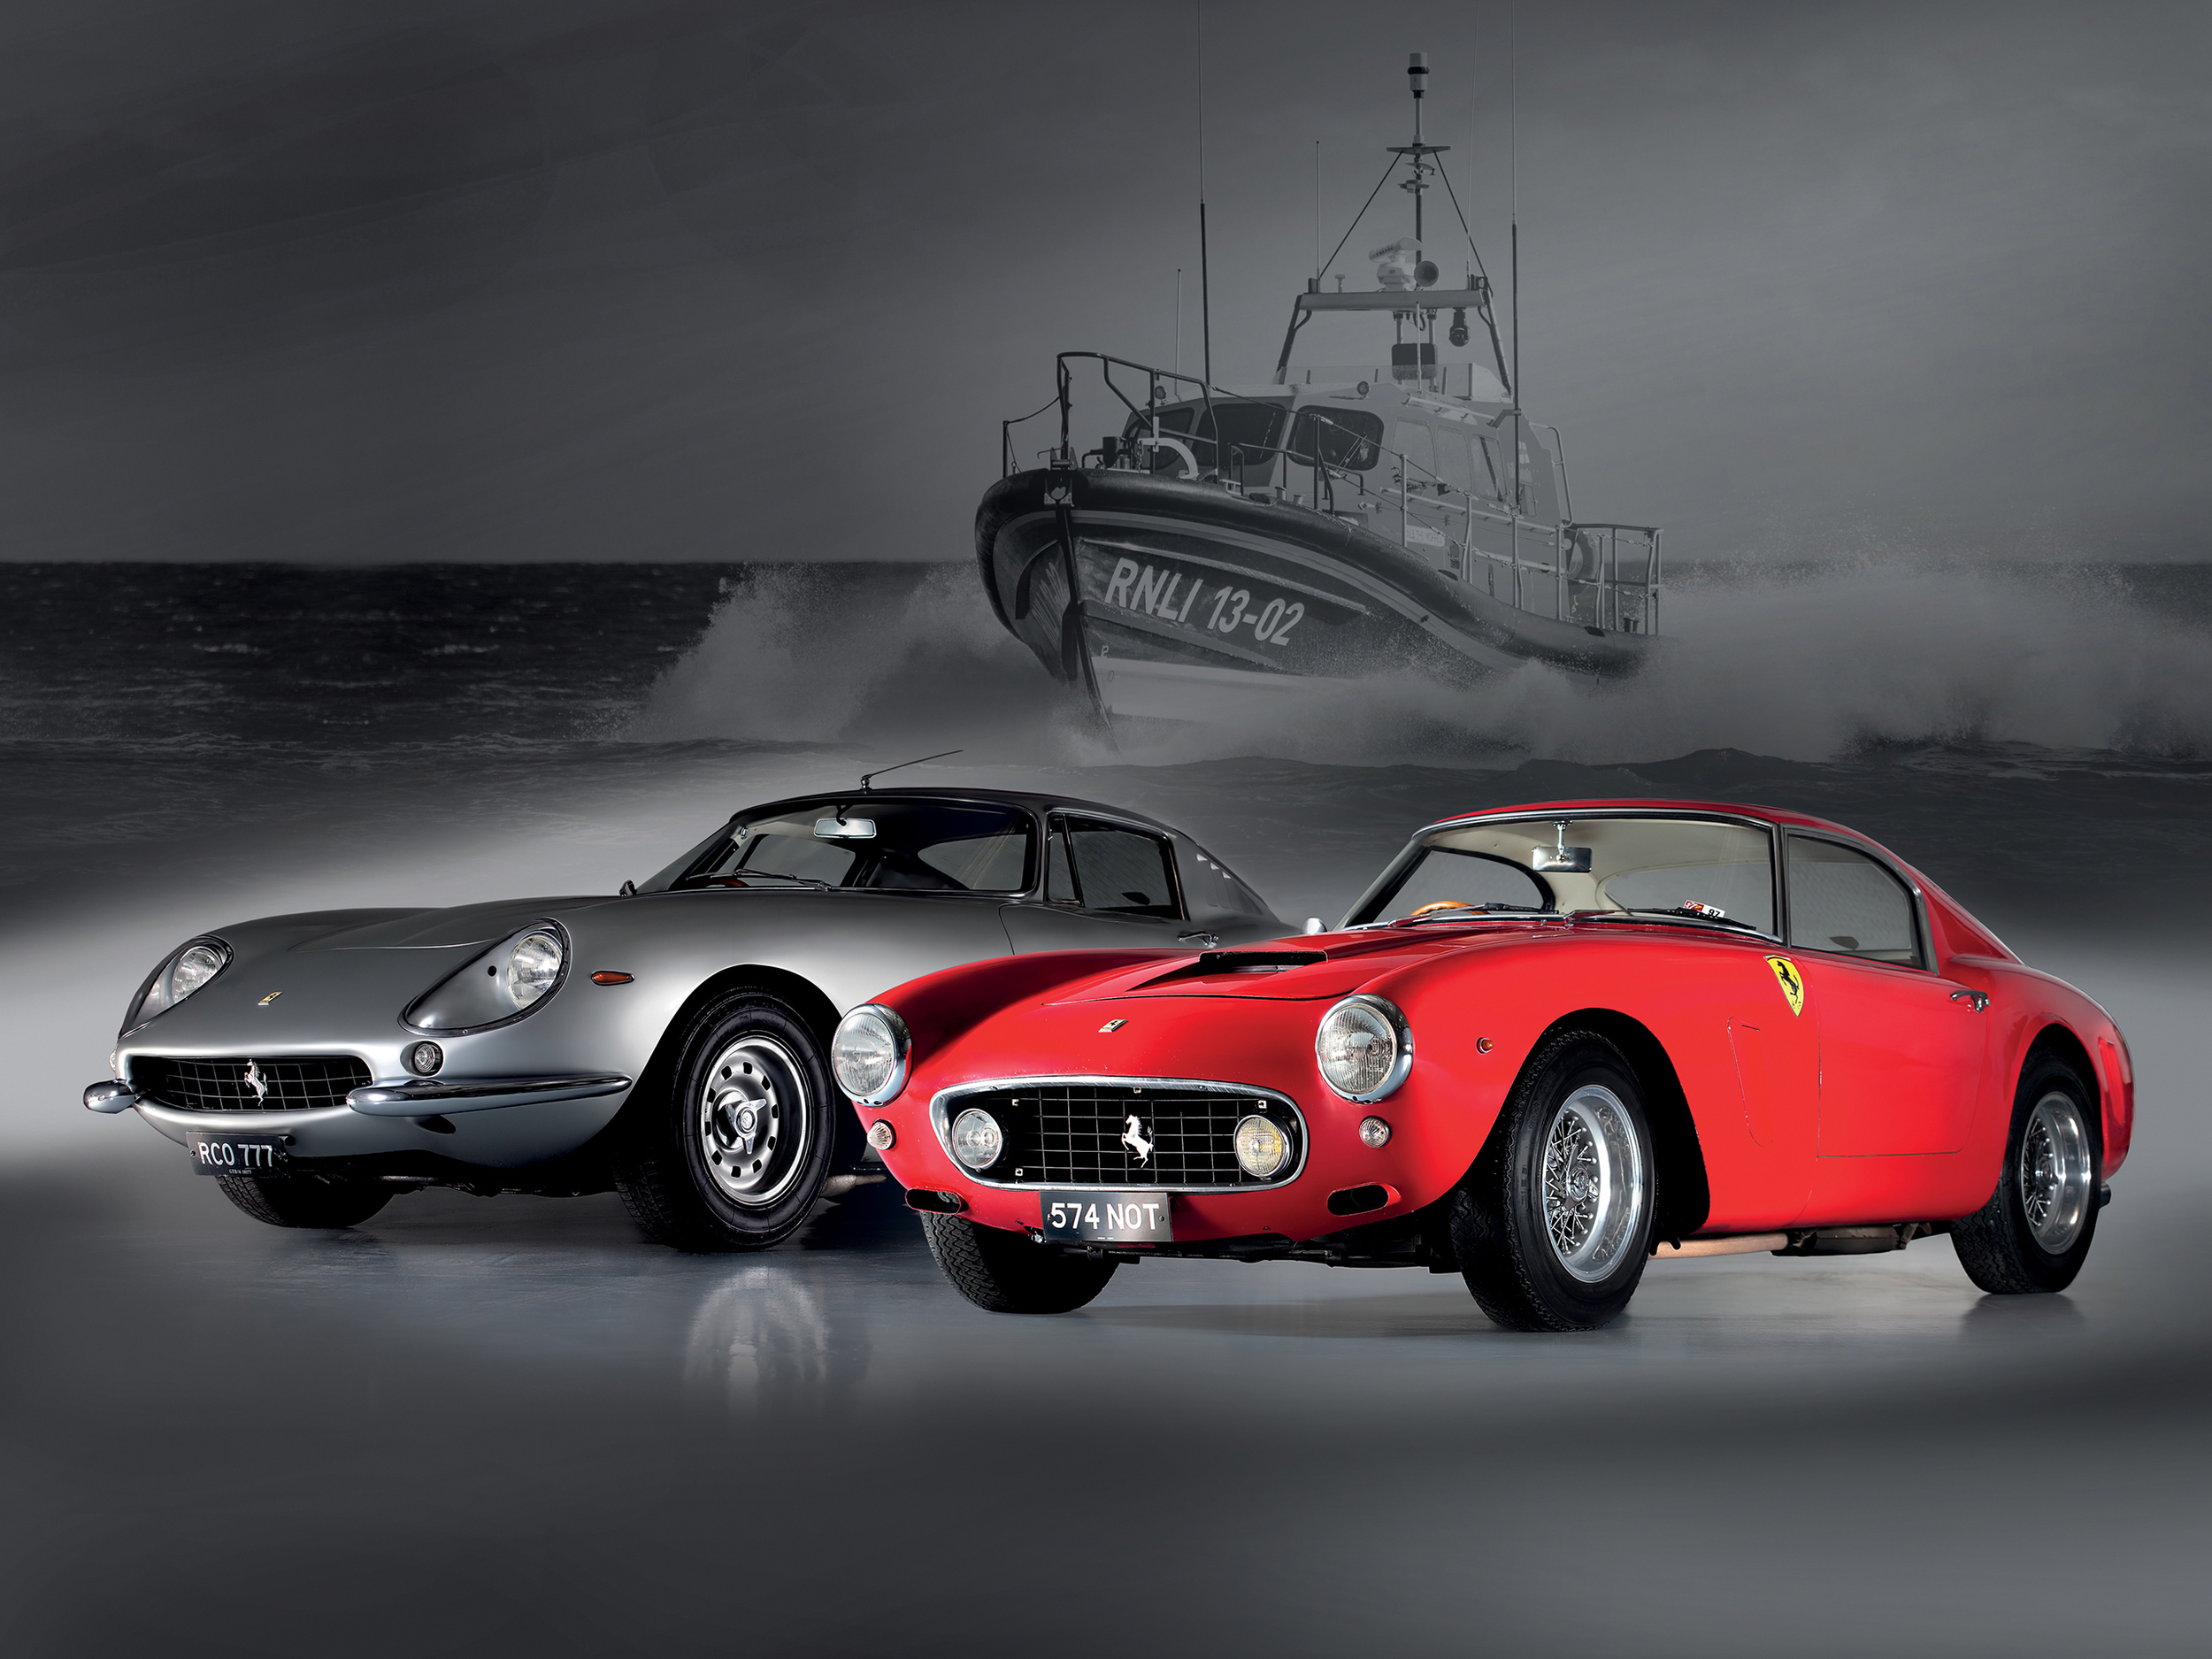 Businessman leaves £10m Ferraris to RNLI